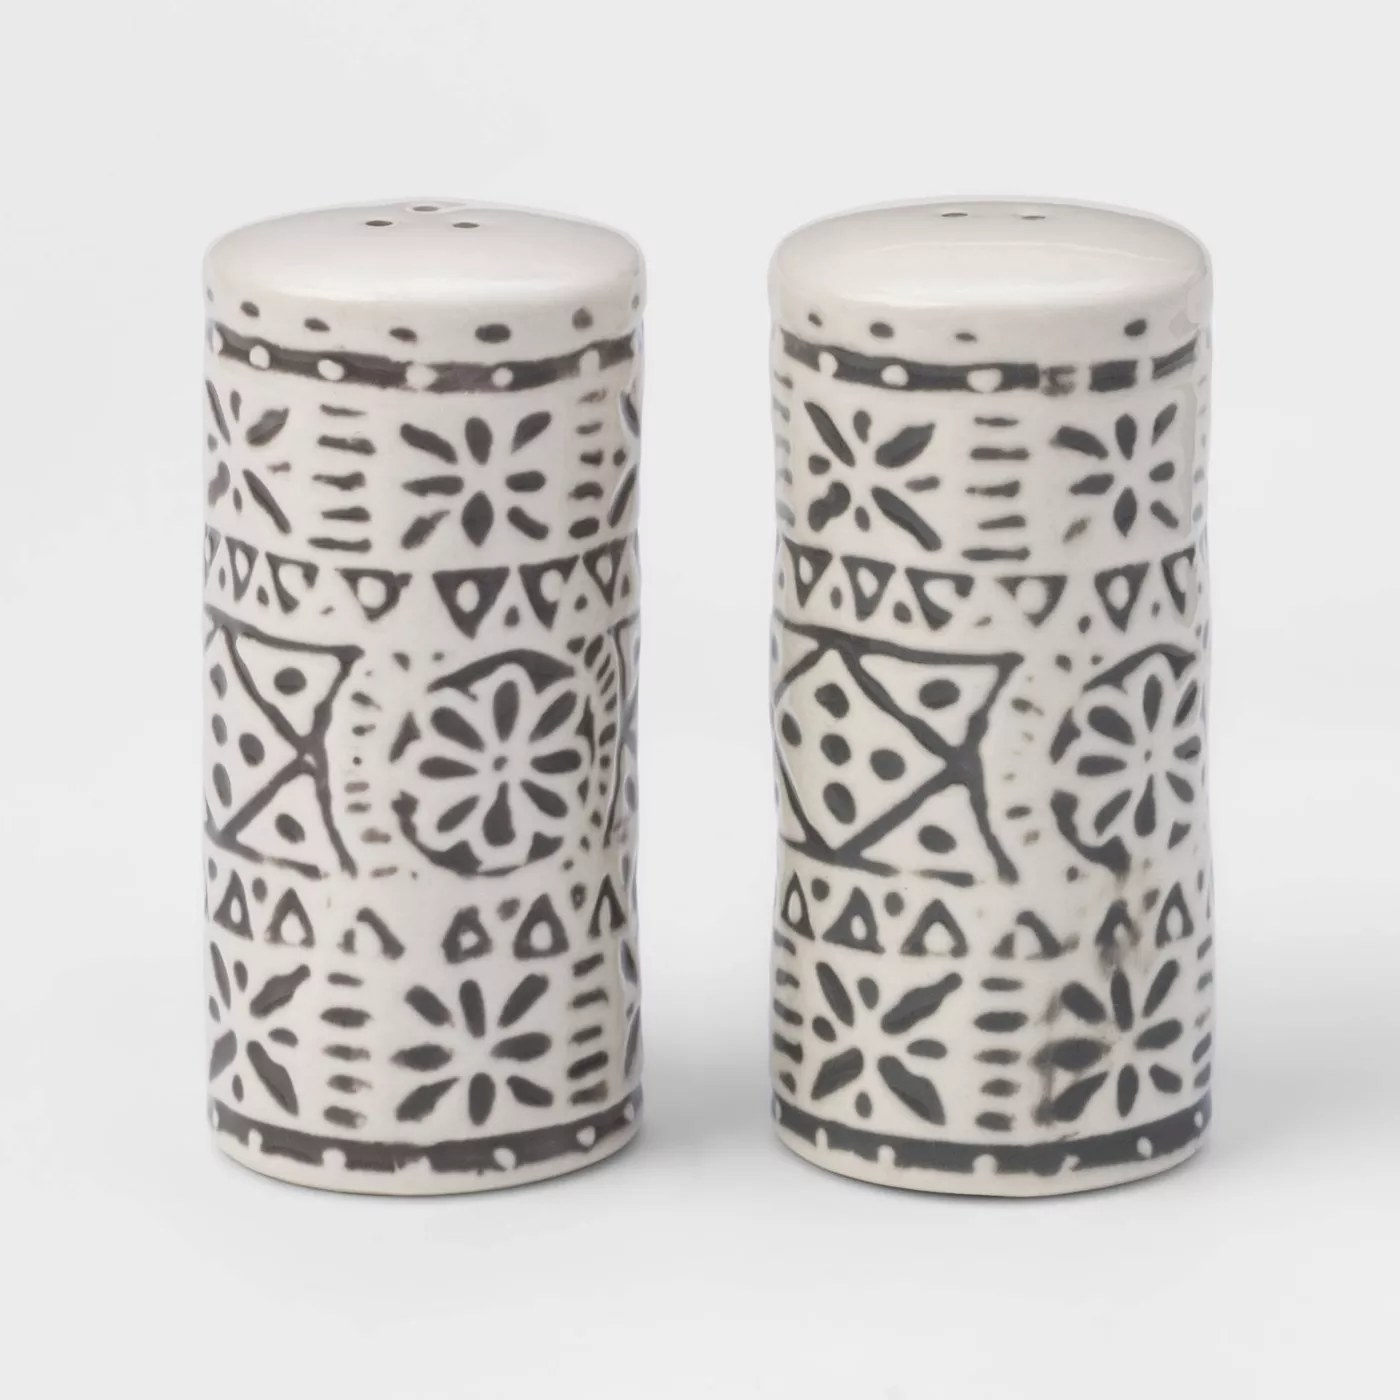 The salt and pepper shakers, standing next to each other